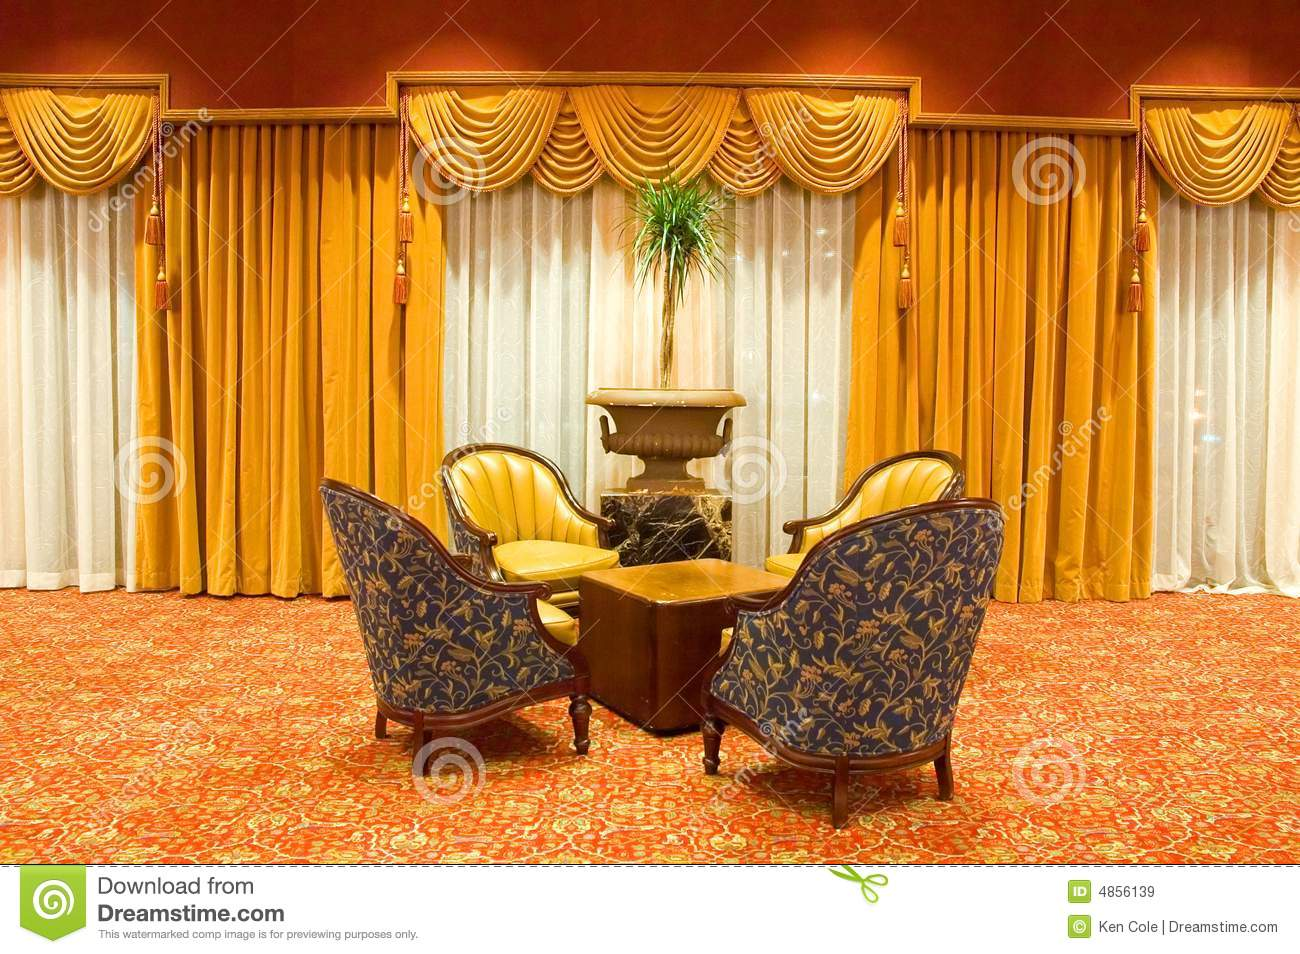 Draped curtains and chairs